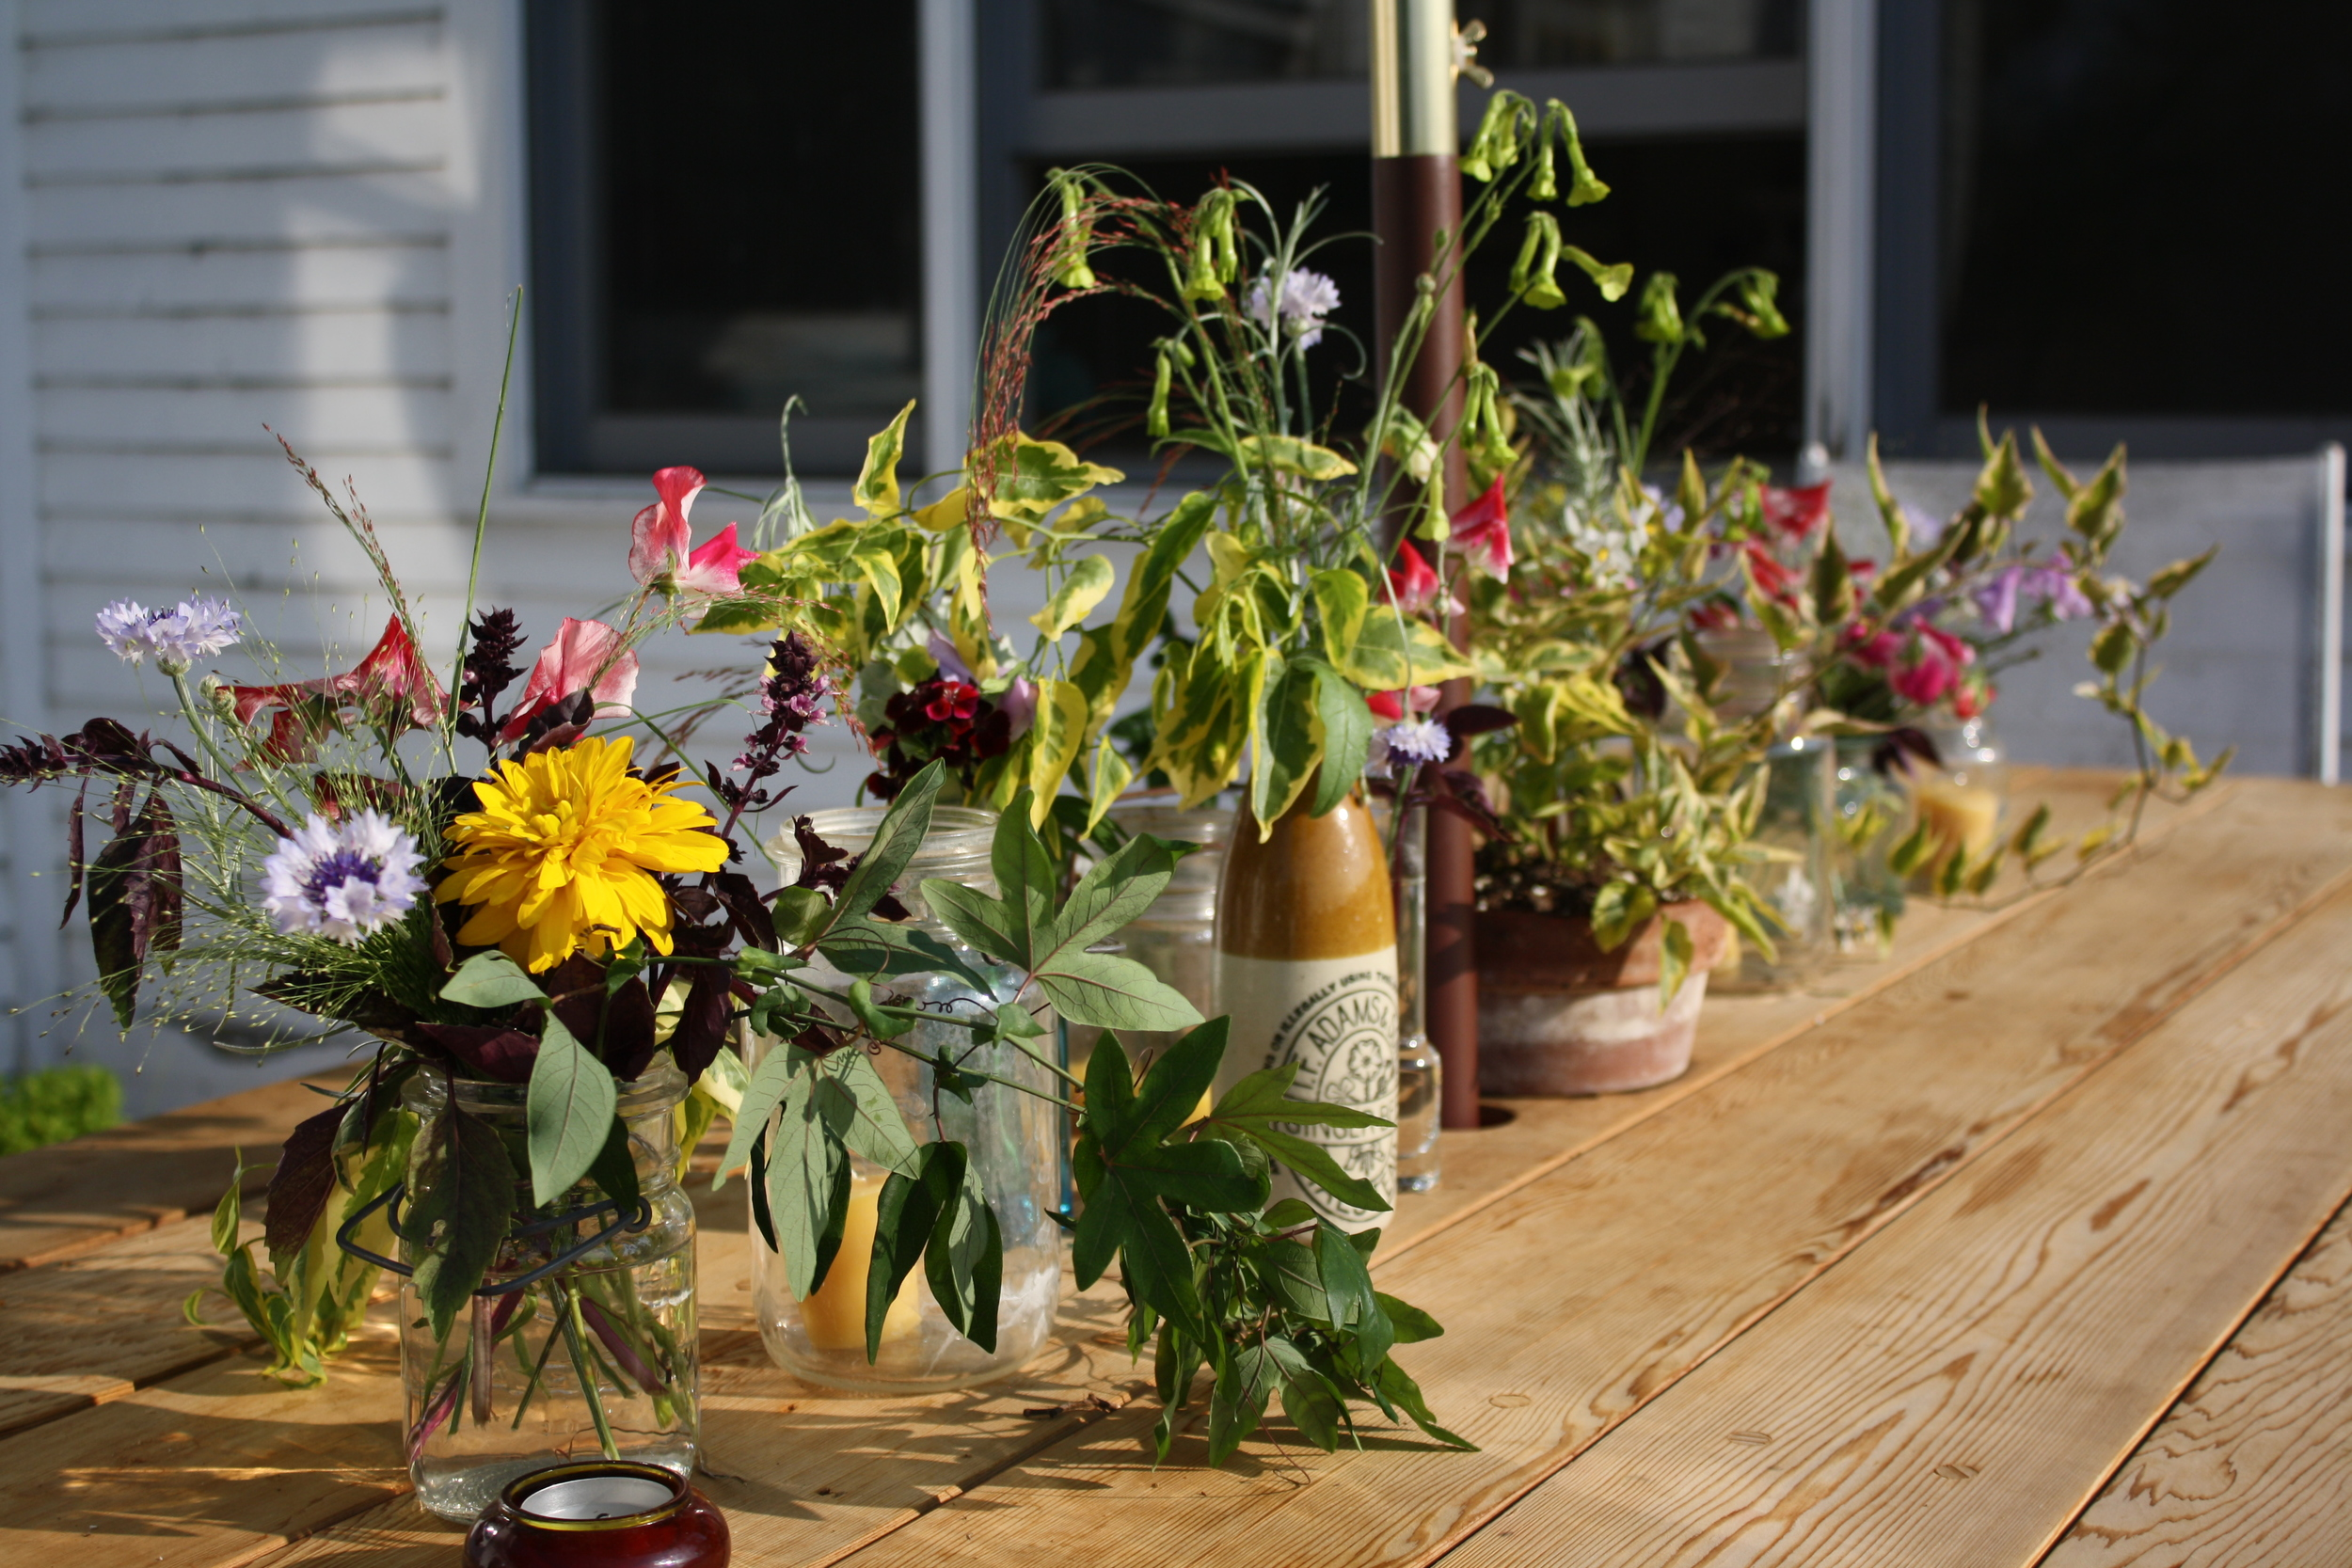 Centerpiece of assorted vases and jars on new outdoor cedar table Adam built...which I've been informed is my birthday and Christmas present for many years to come!